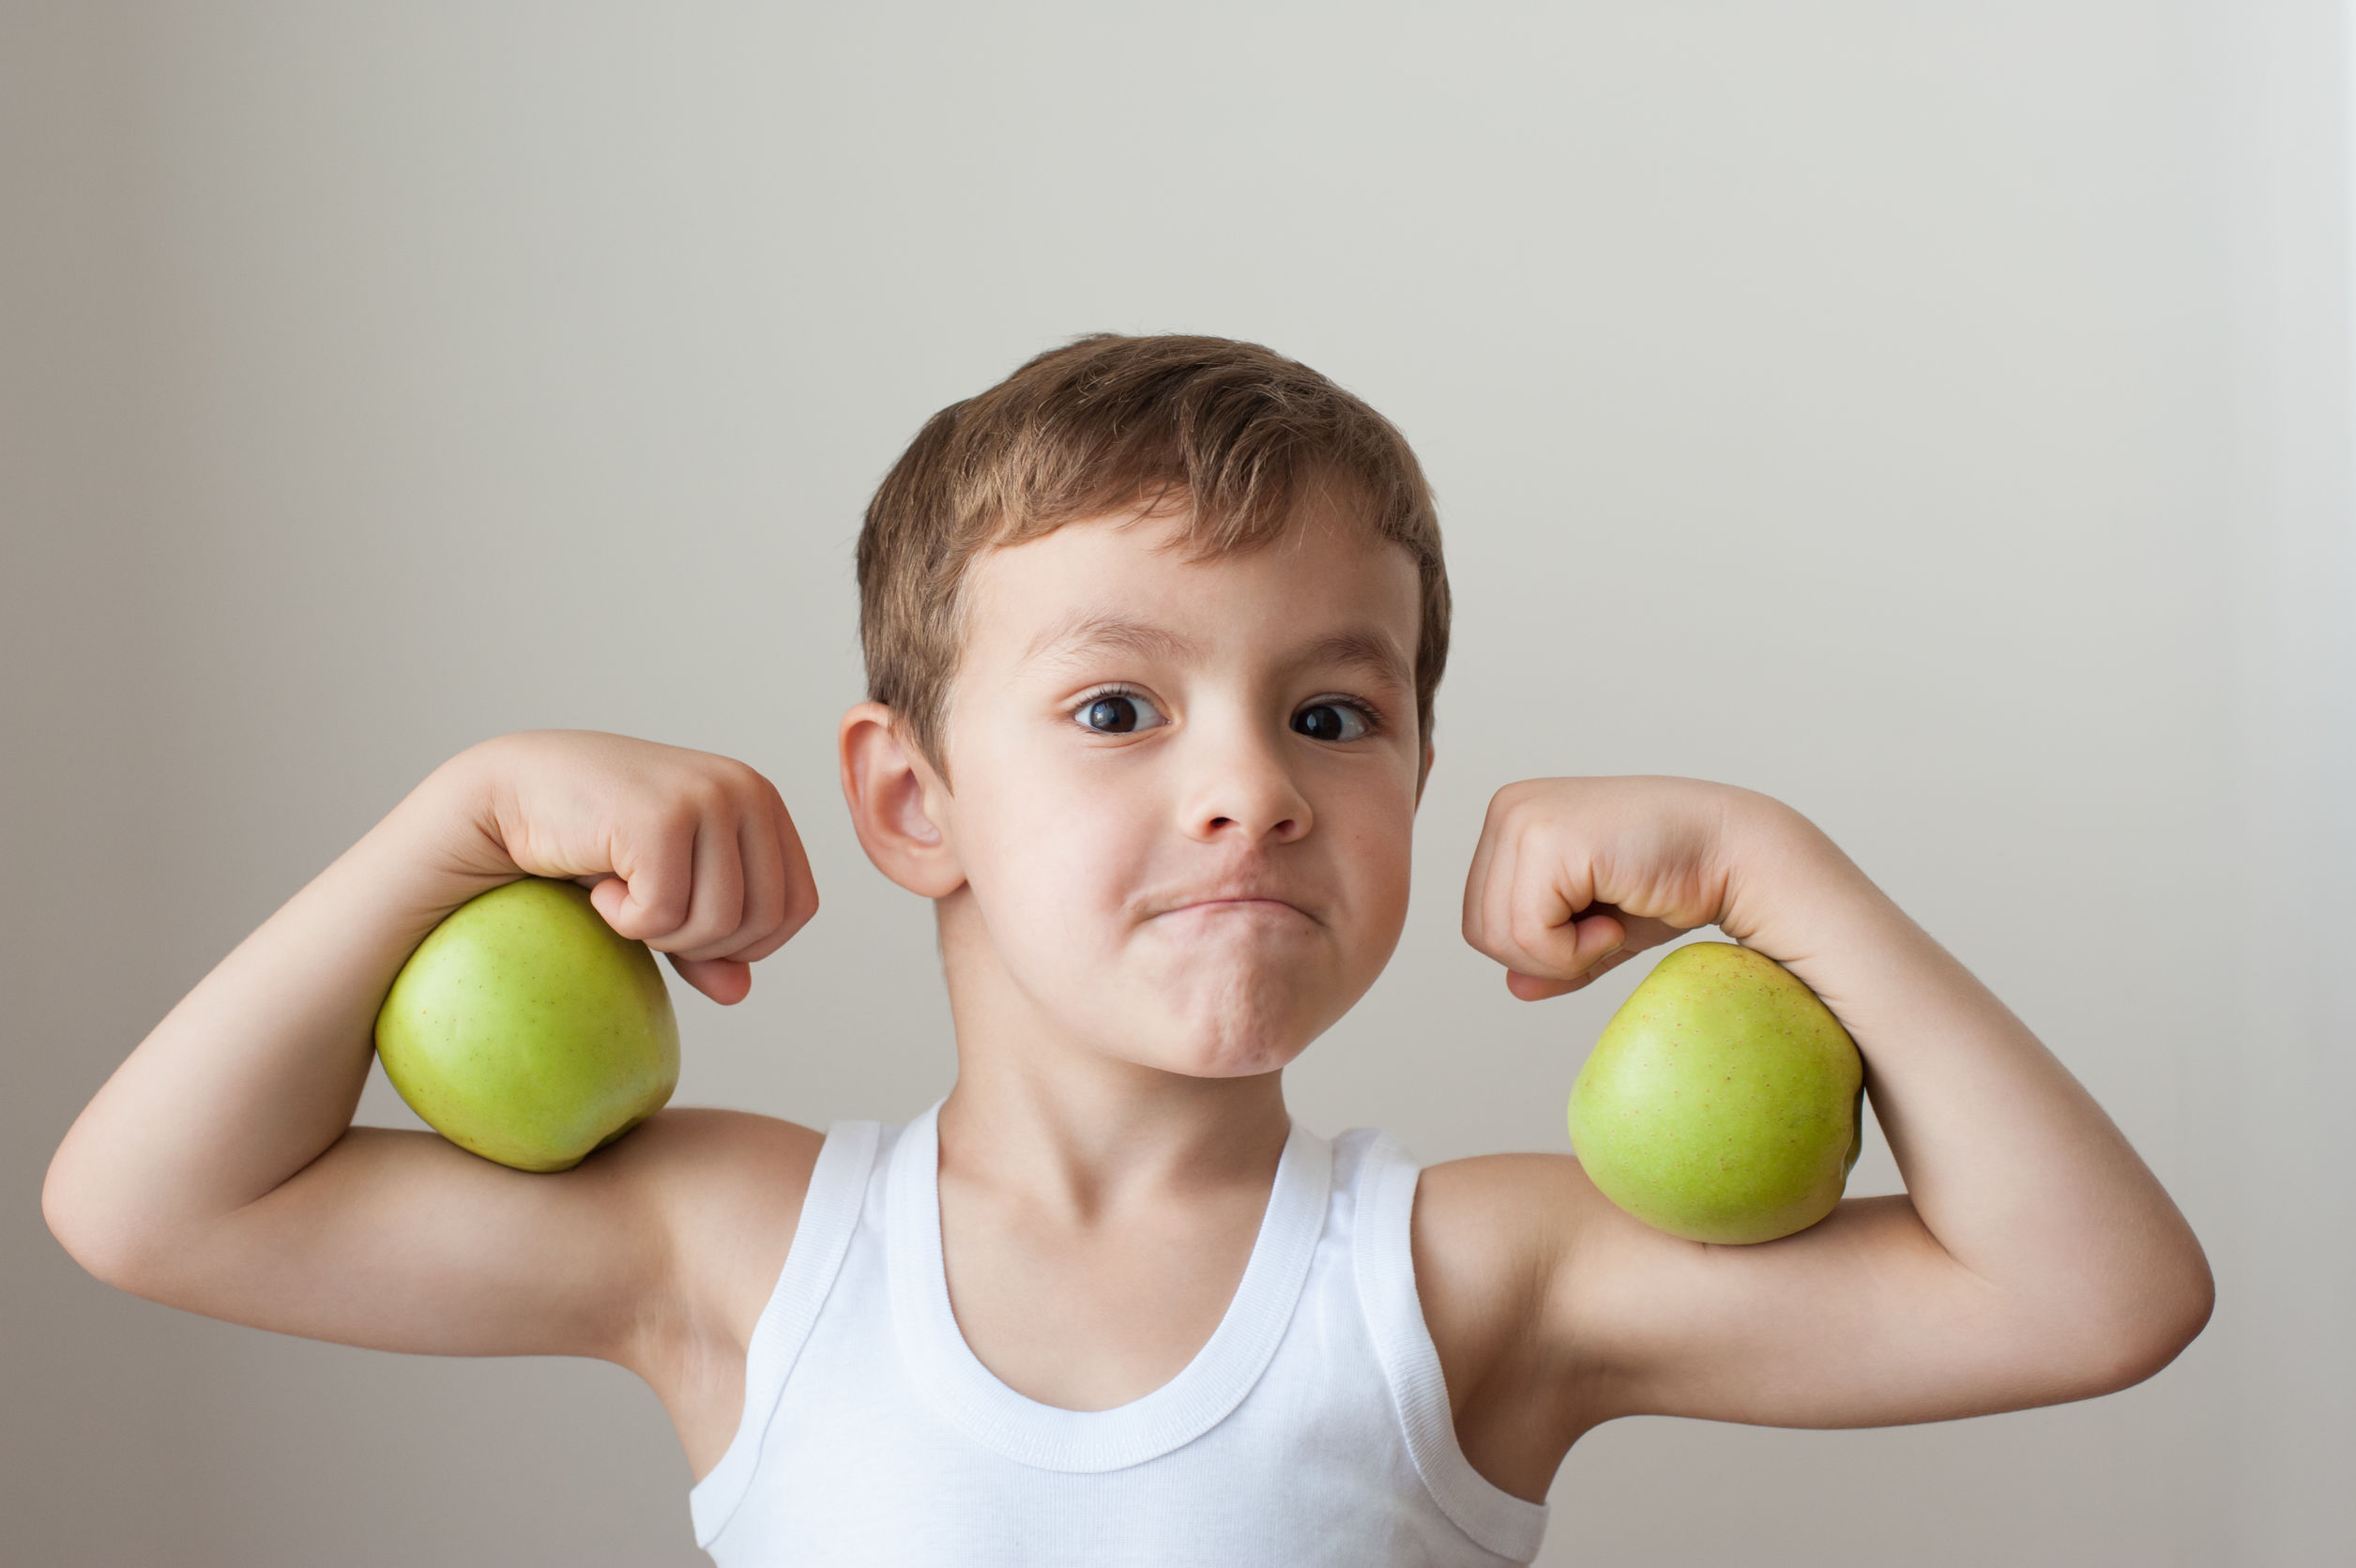 Boy With Apples Show Biceps